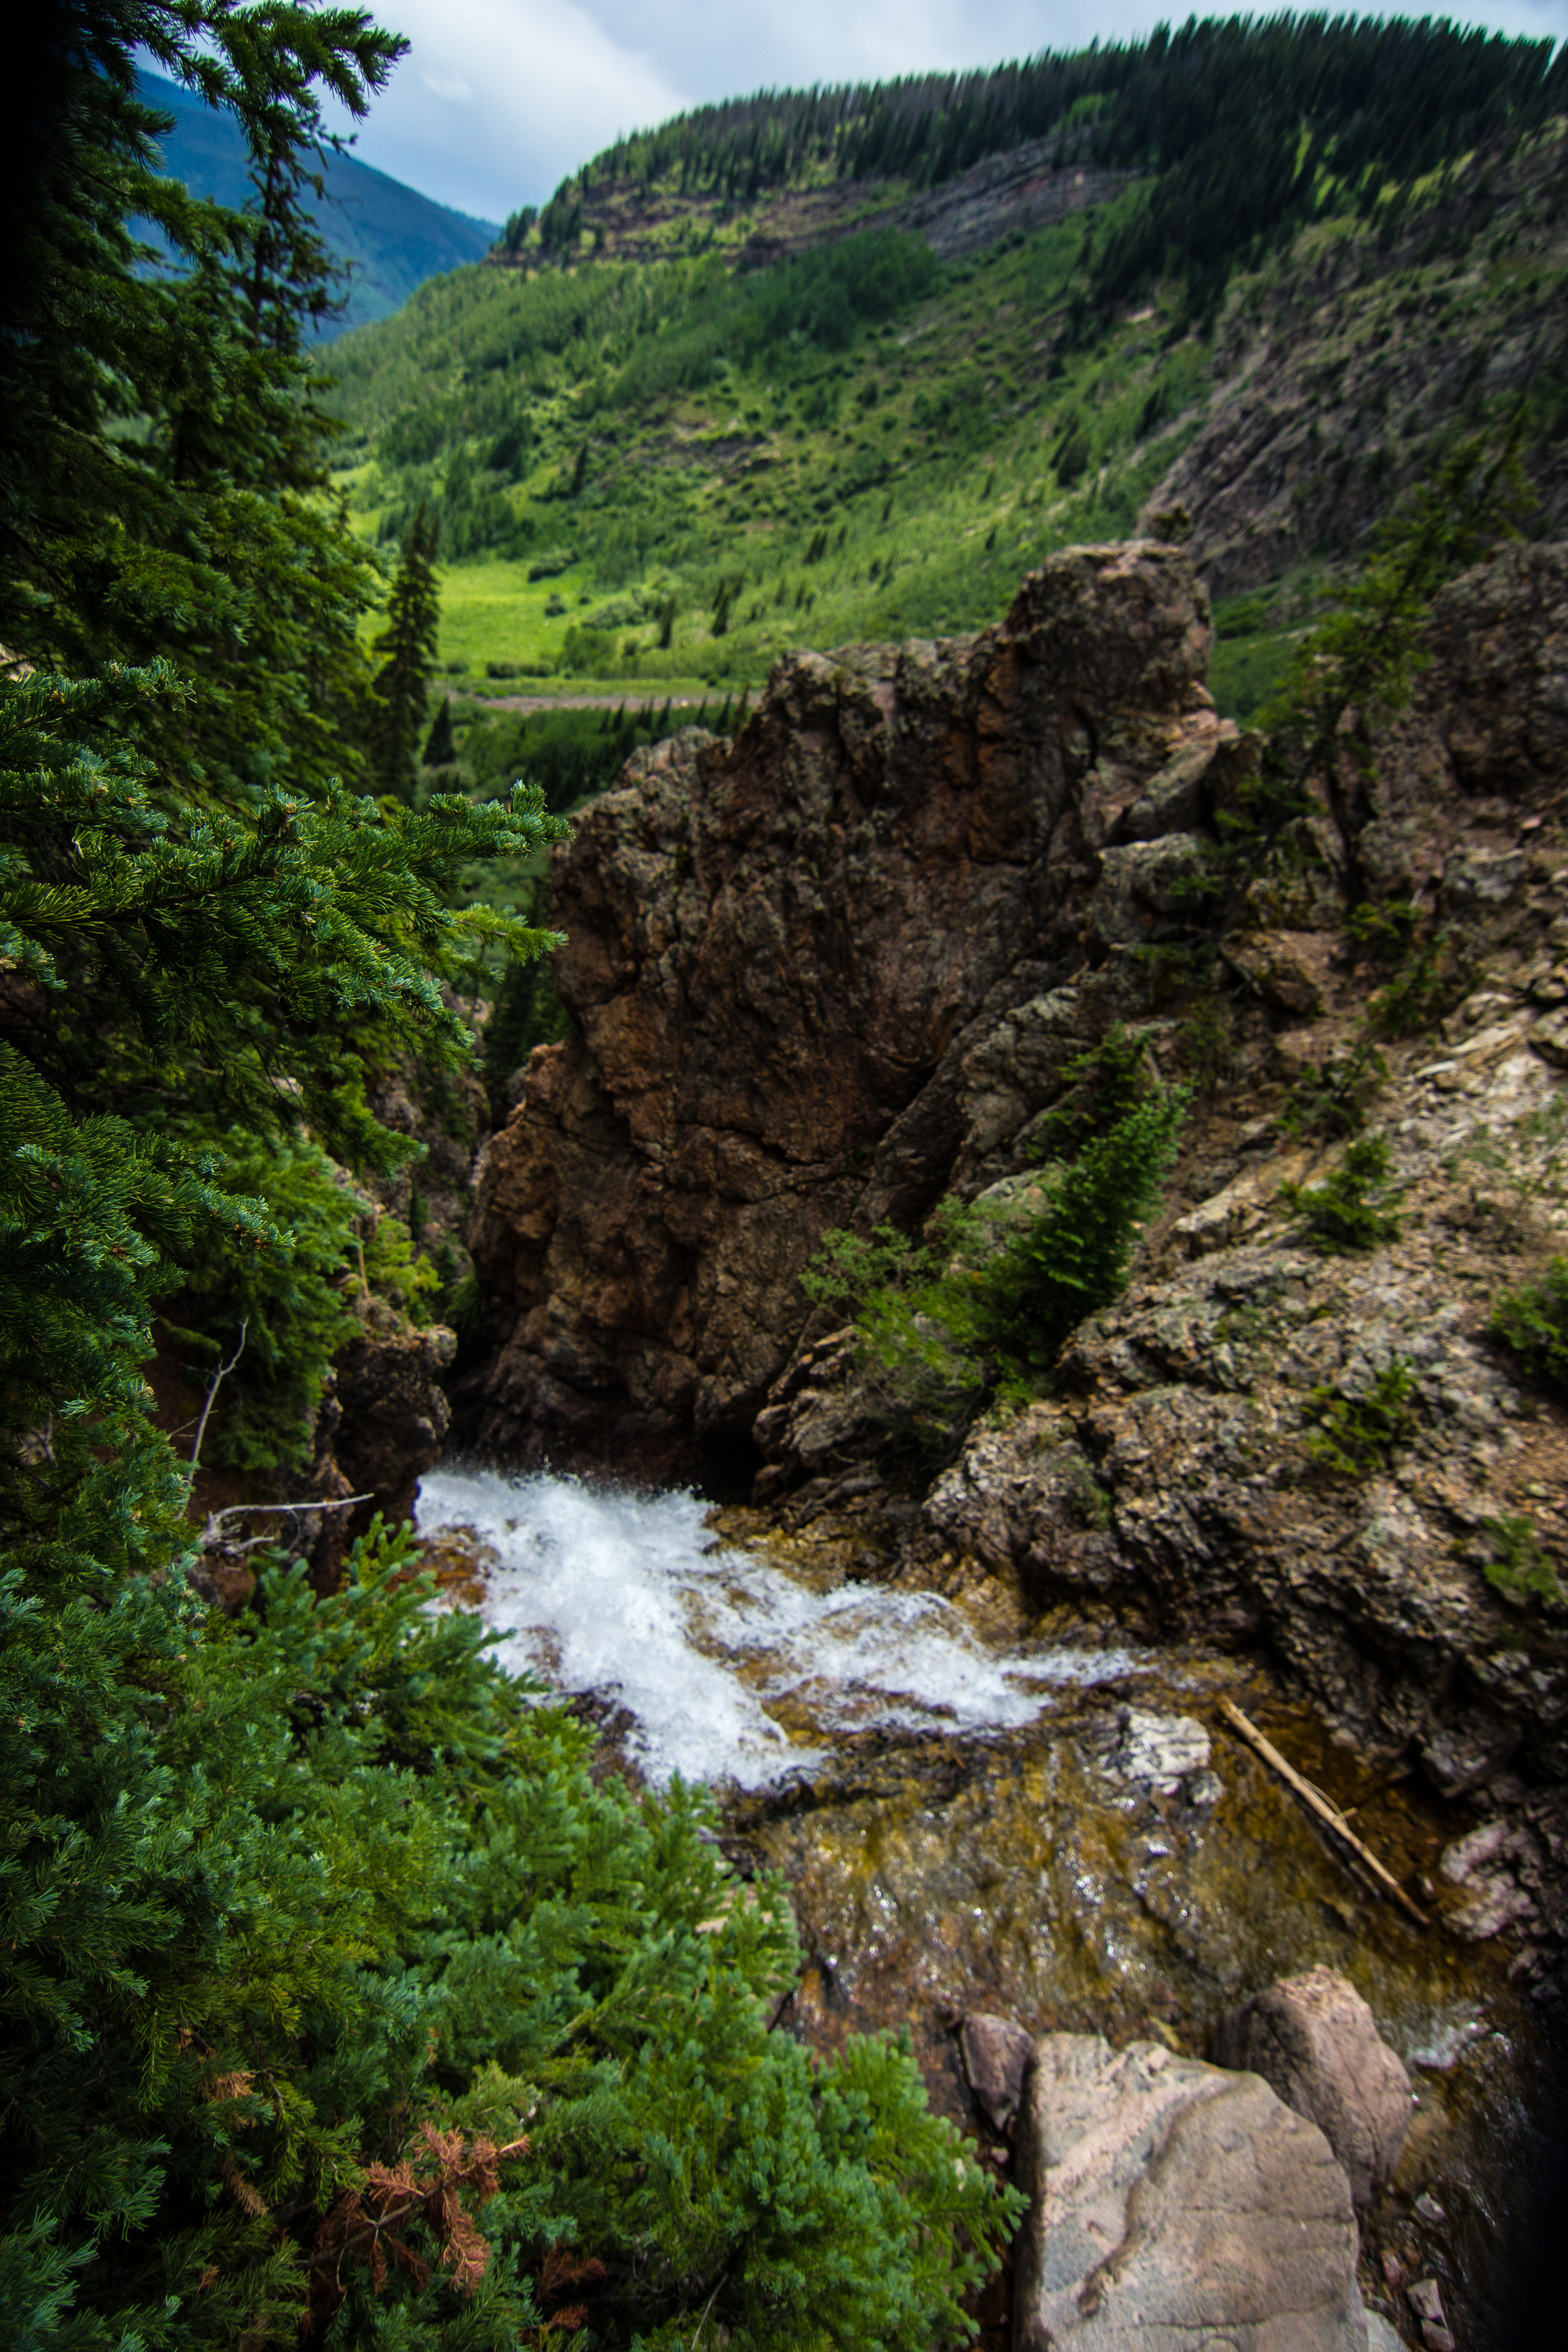 BOOTH FALLS // IMAGE BY WWW.FRANKIEBOYPHOTOGRAPHY.COM // EAST VAIL, COLORADO